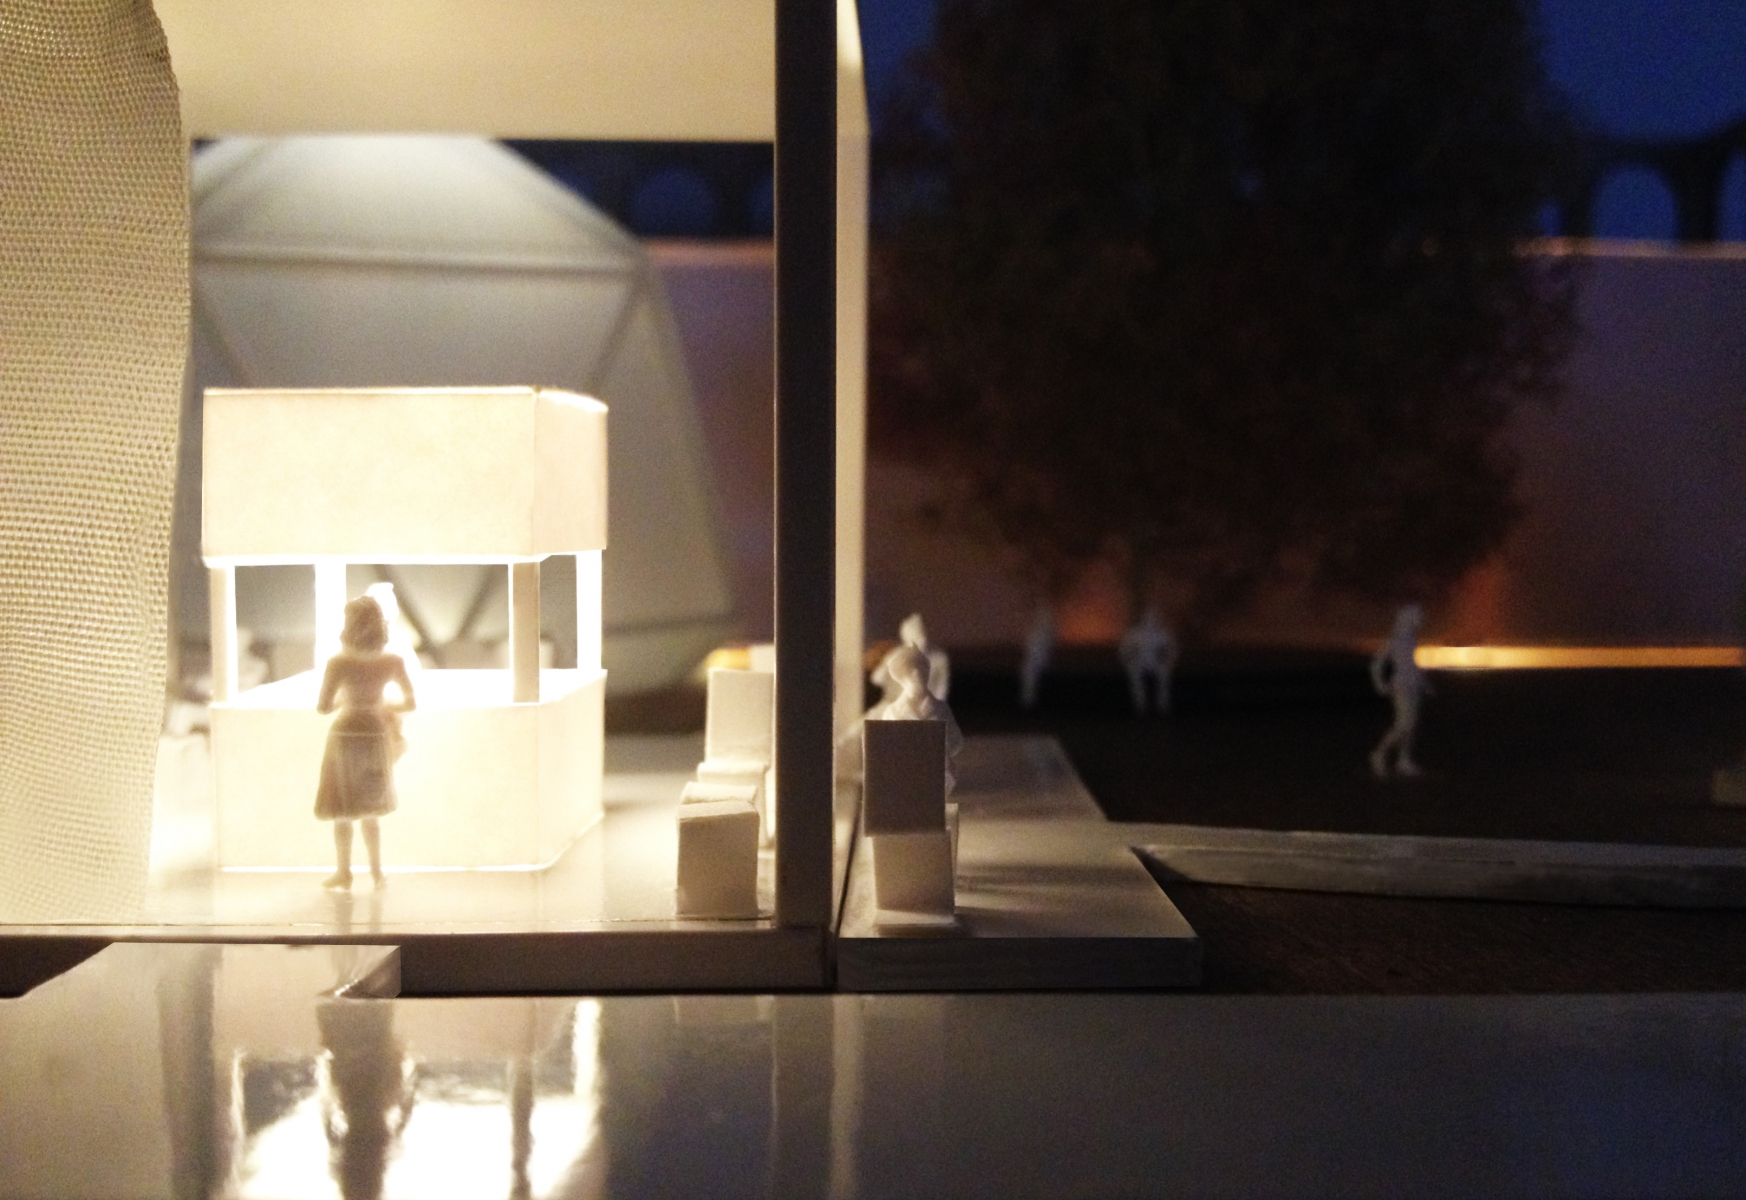 8.Hub-Leonardo_model-detail-night